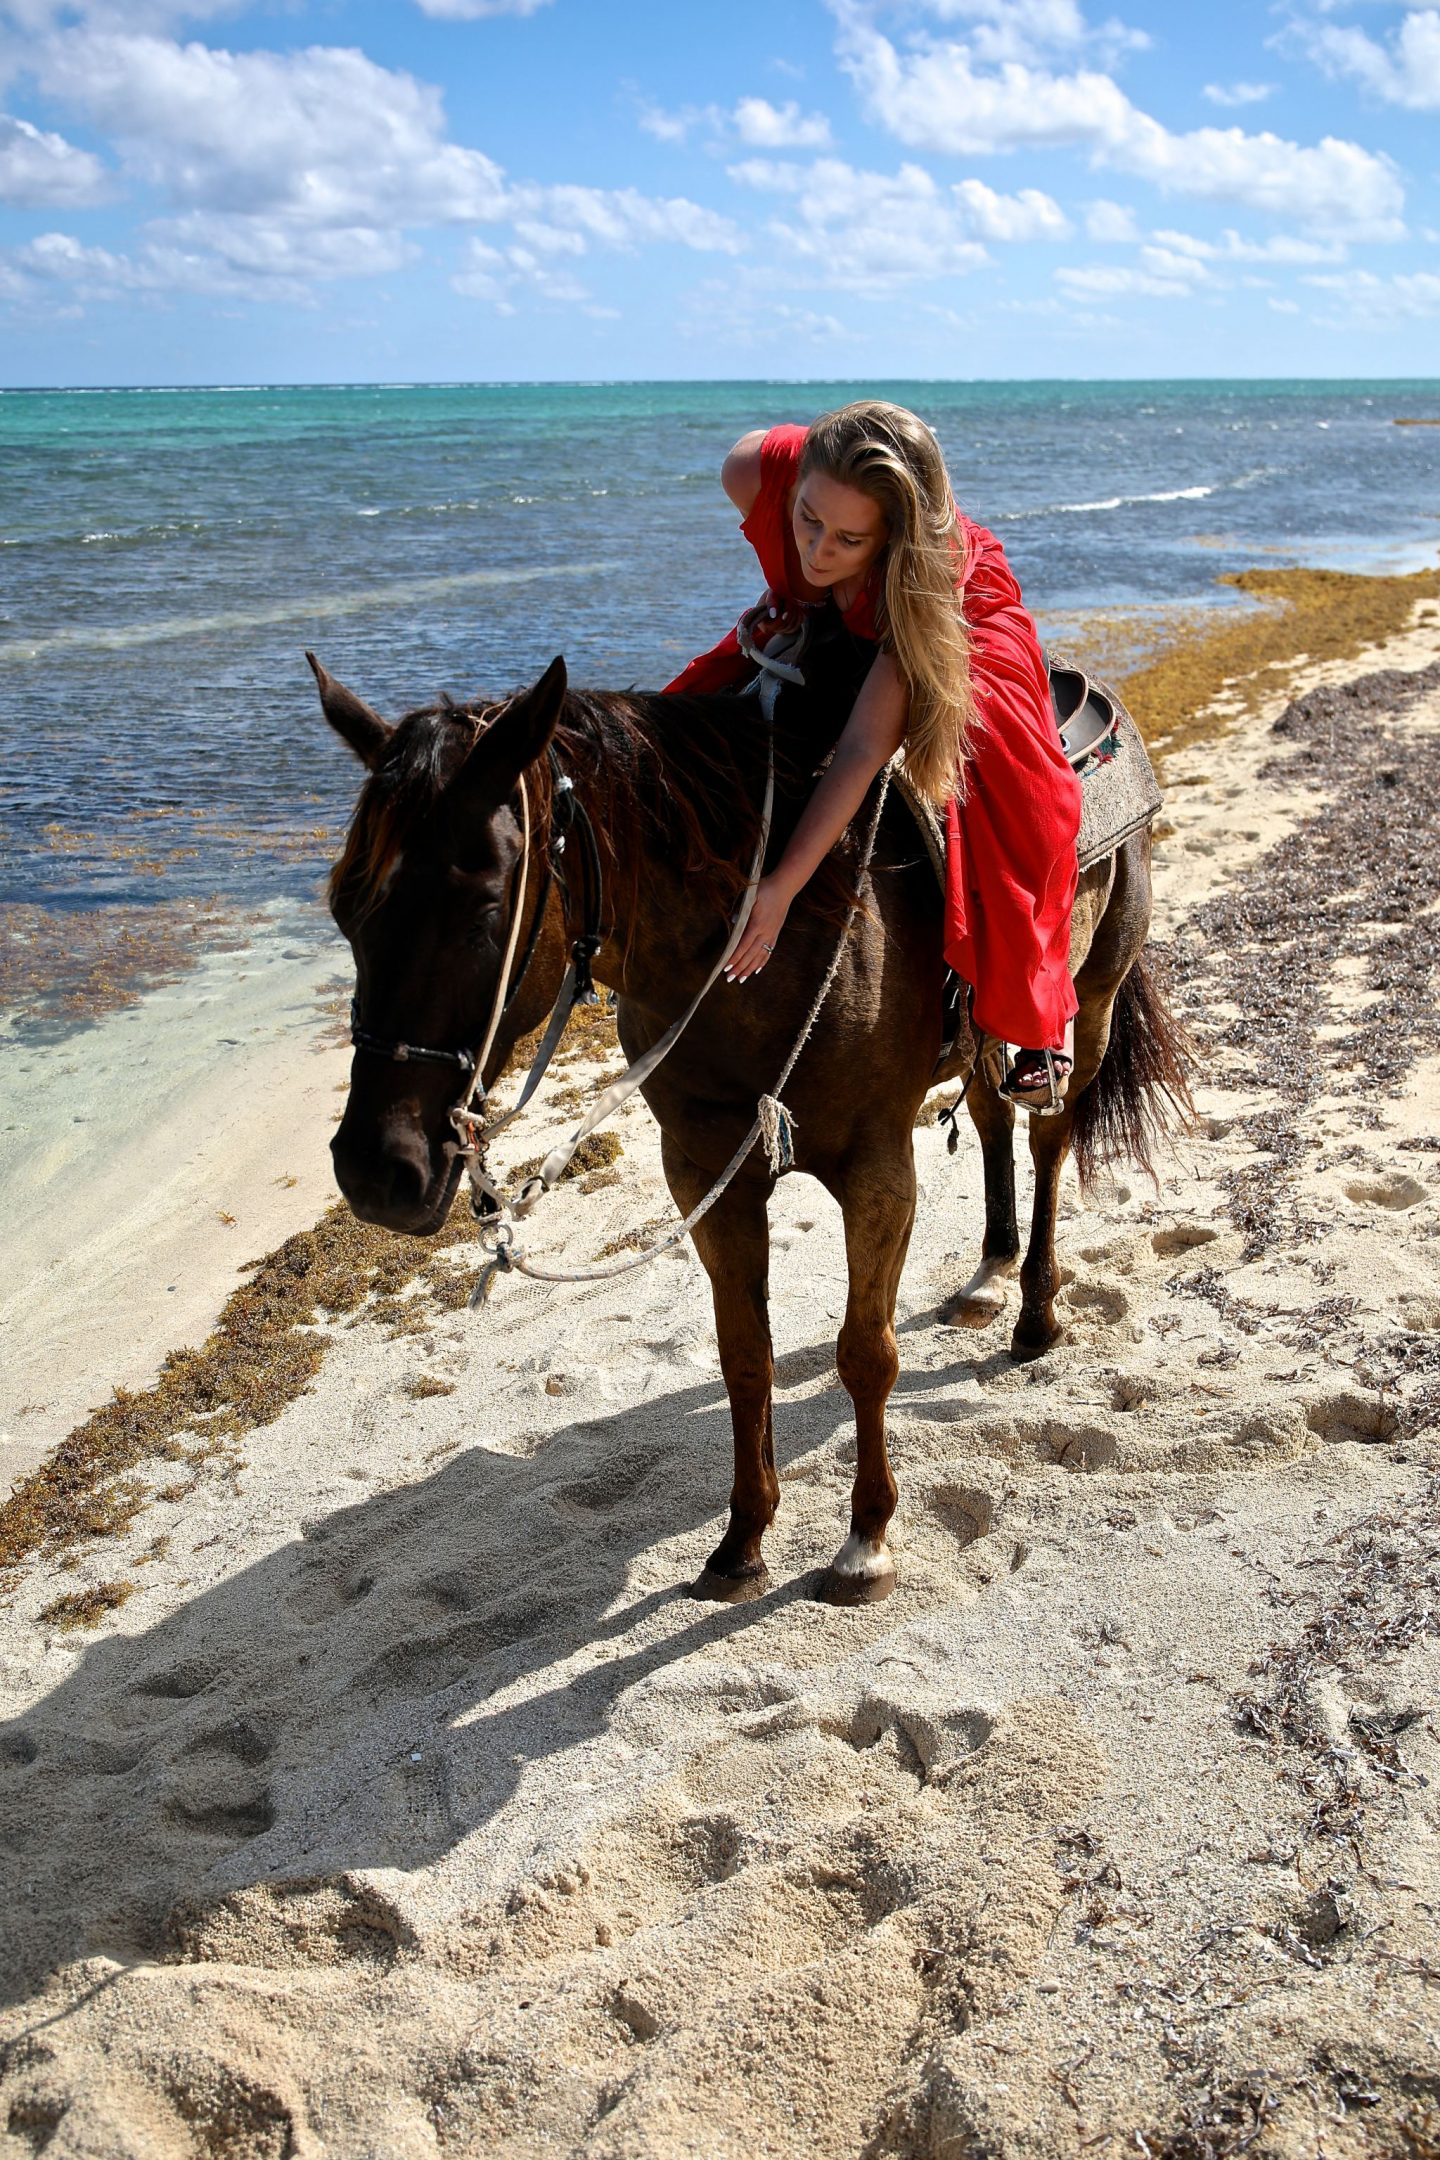 Horse Riding on the beach, Grand Cayman, Katie Heath, KALANCHOE